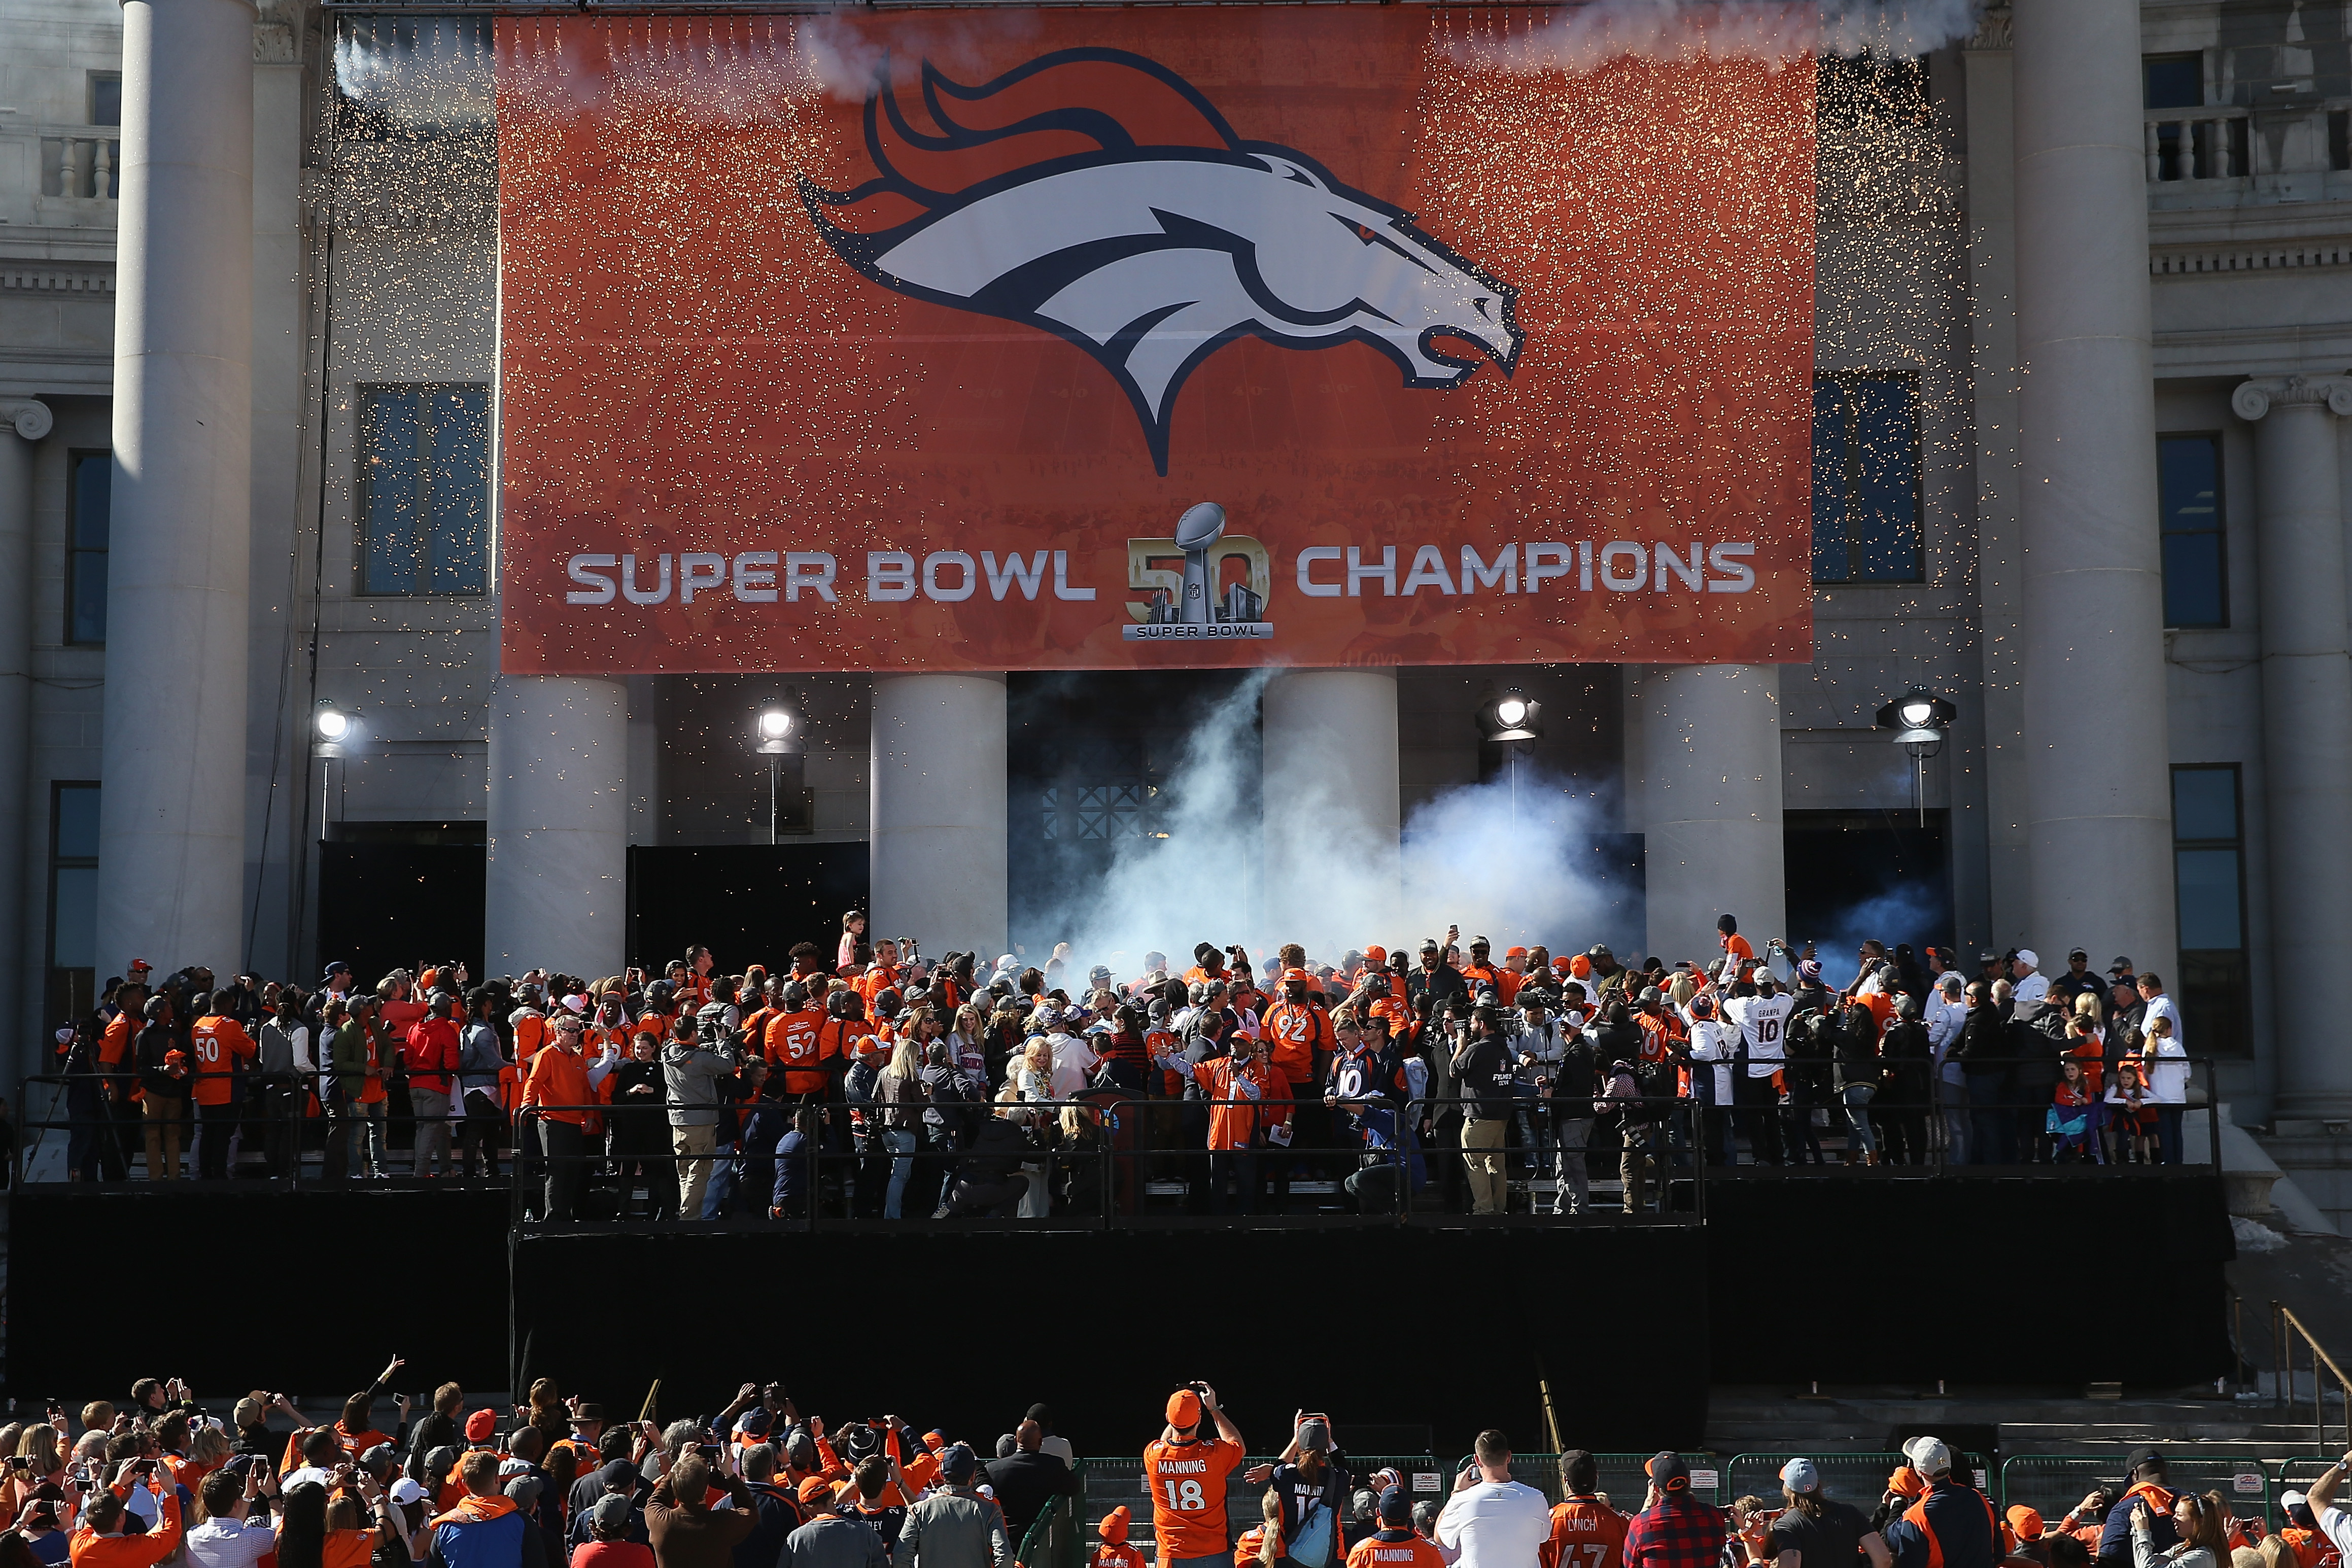 The Super Bowl 50 Champion Denver Broncos are celebrated at a rally on the steps of the Denver City and County Building on February 9, 2016 in Denver, Colorado. The Broncos defeated the Panthers 24-10 in Super Bowl 50. (Photo by Doug Pensinger/Getty Images)